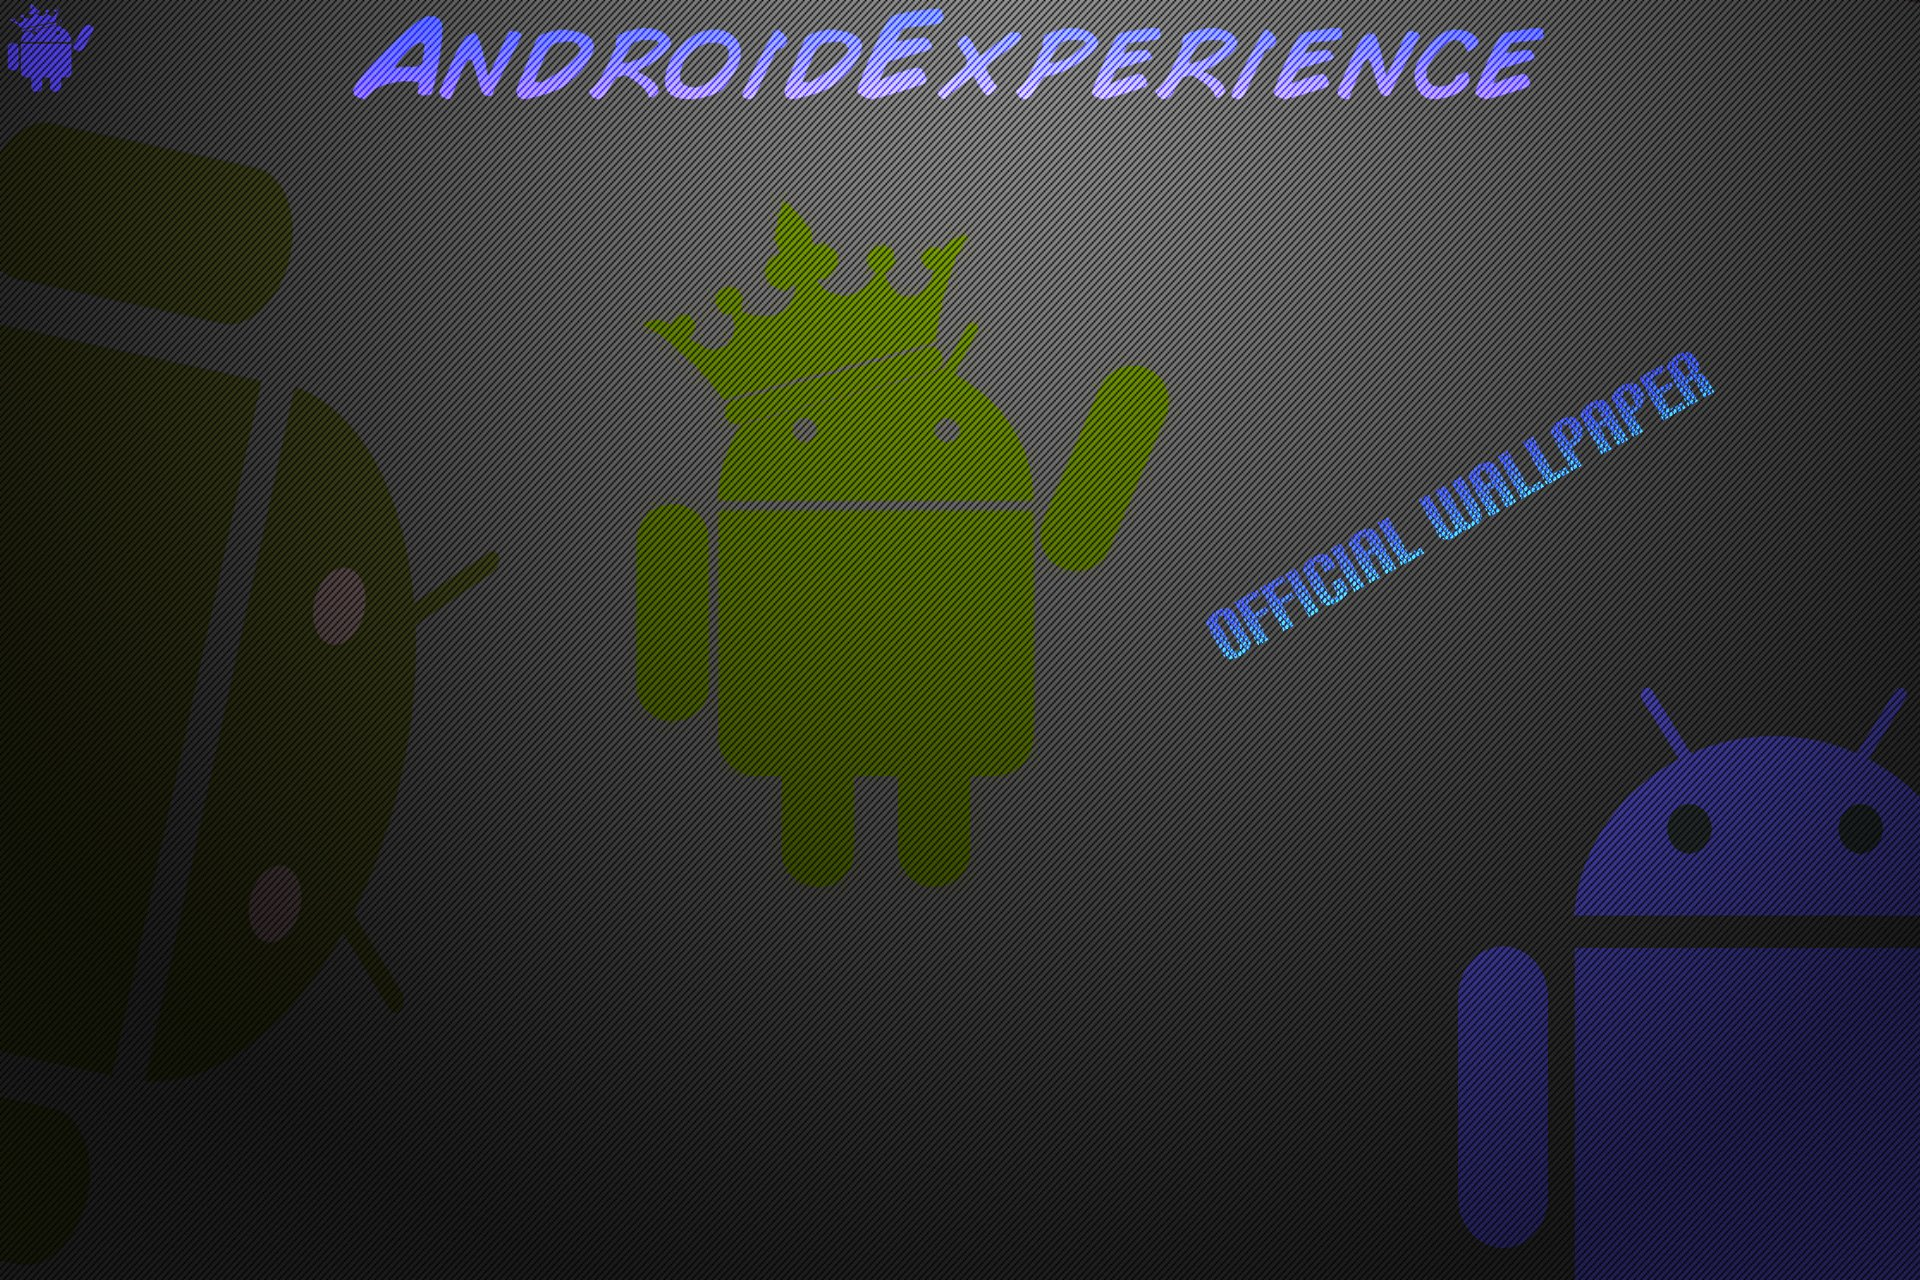 Wallpaper AndroidExperience Wallpaper Tablet 1920x1280